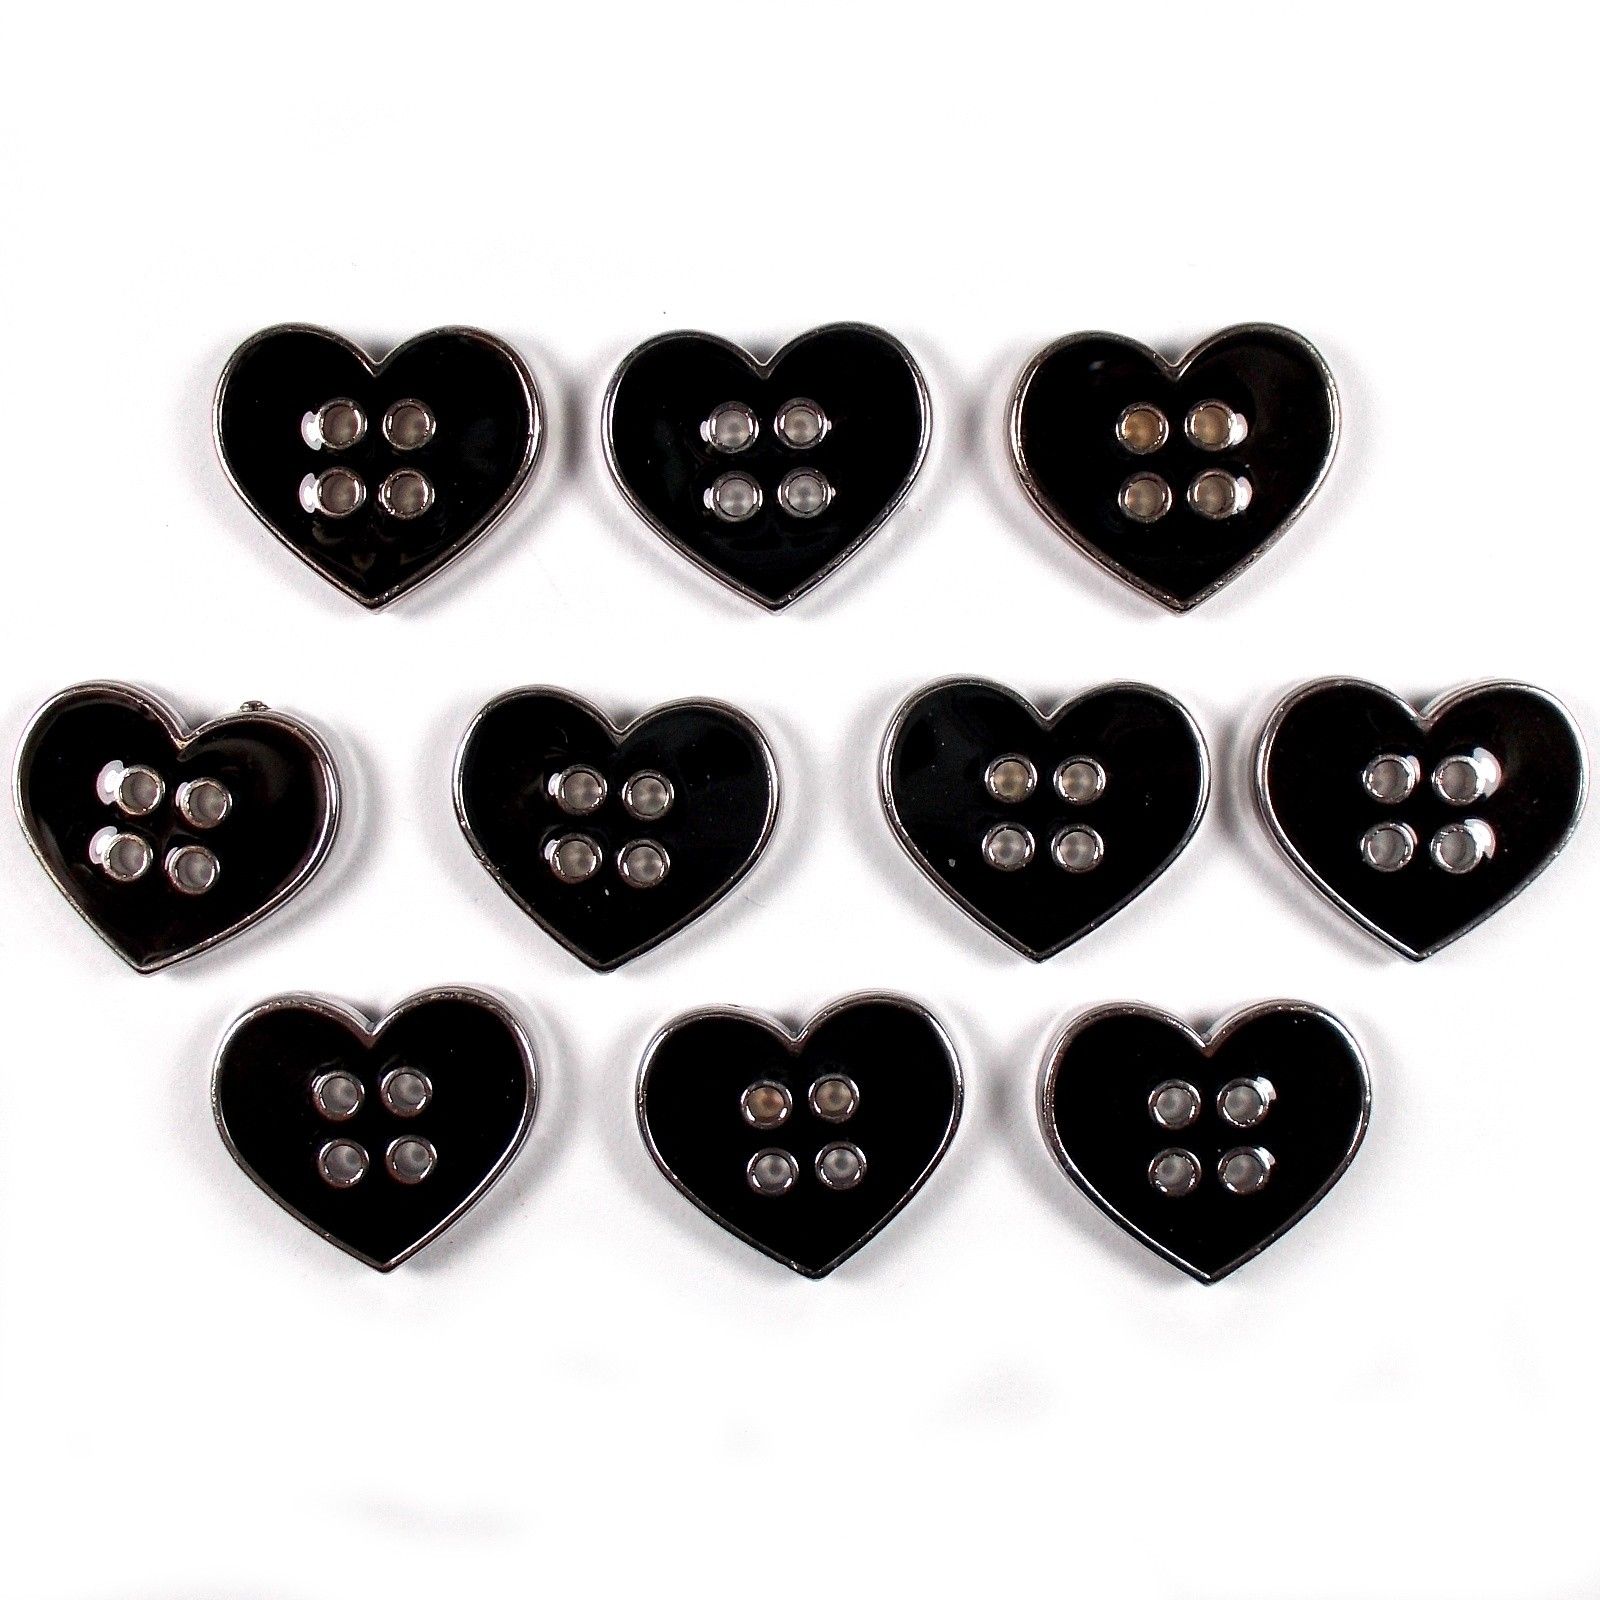 Enamel Metal 4 Hole Heart Silver Colour Buttons 11mm Black Pack of 10